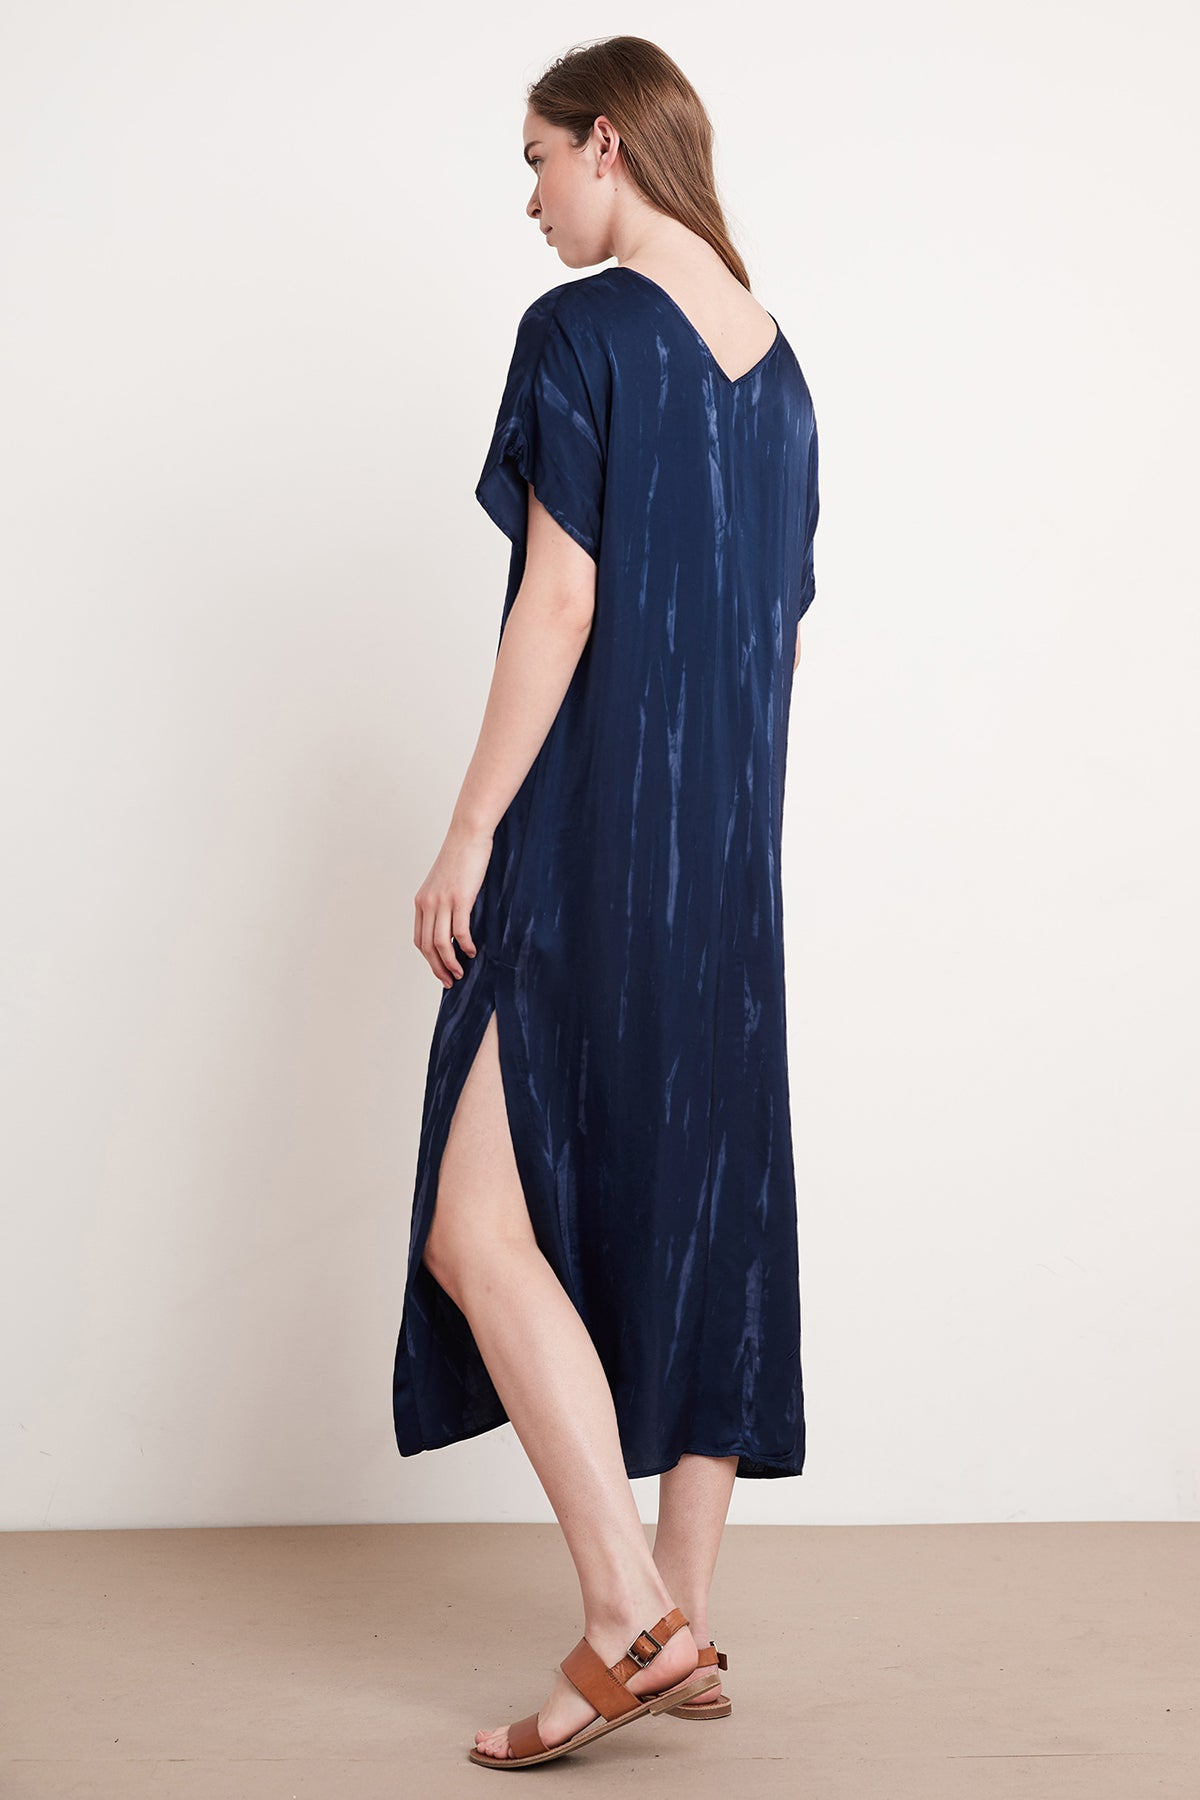 VALERIE TIE DYE SATIN KAFTAN DRESS